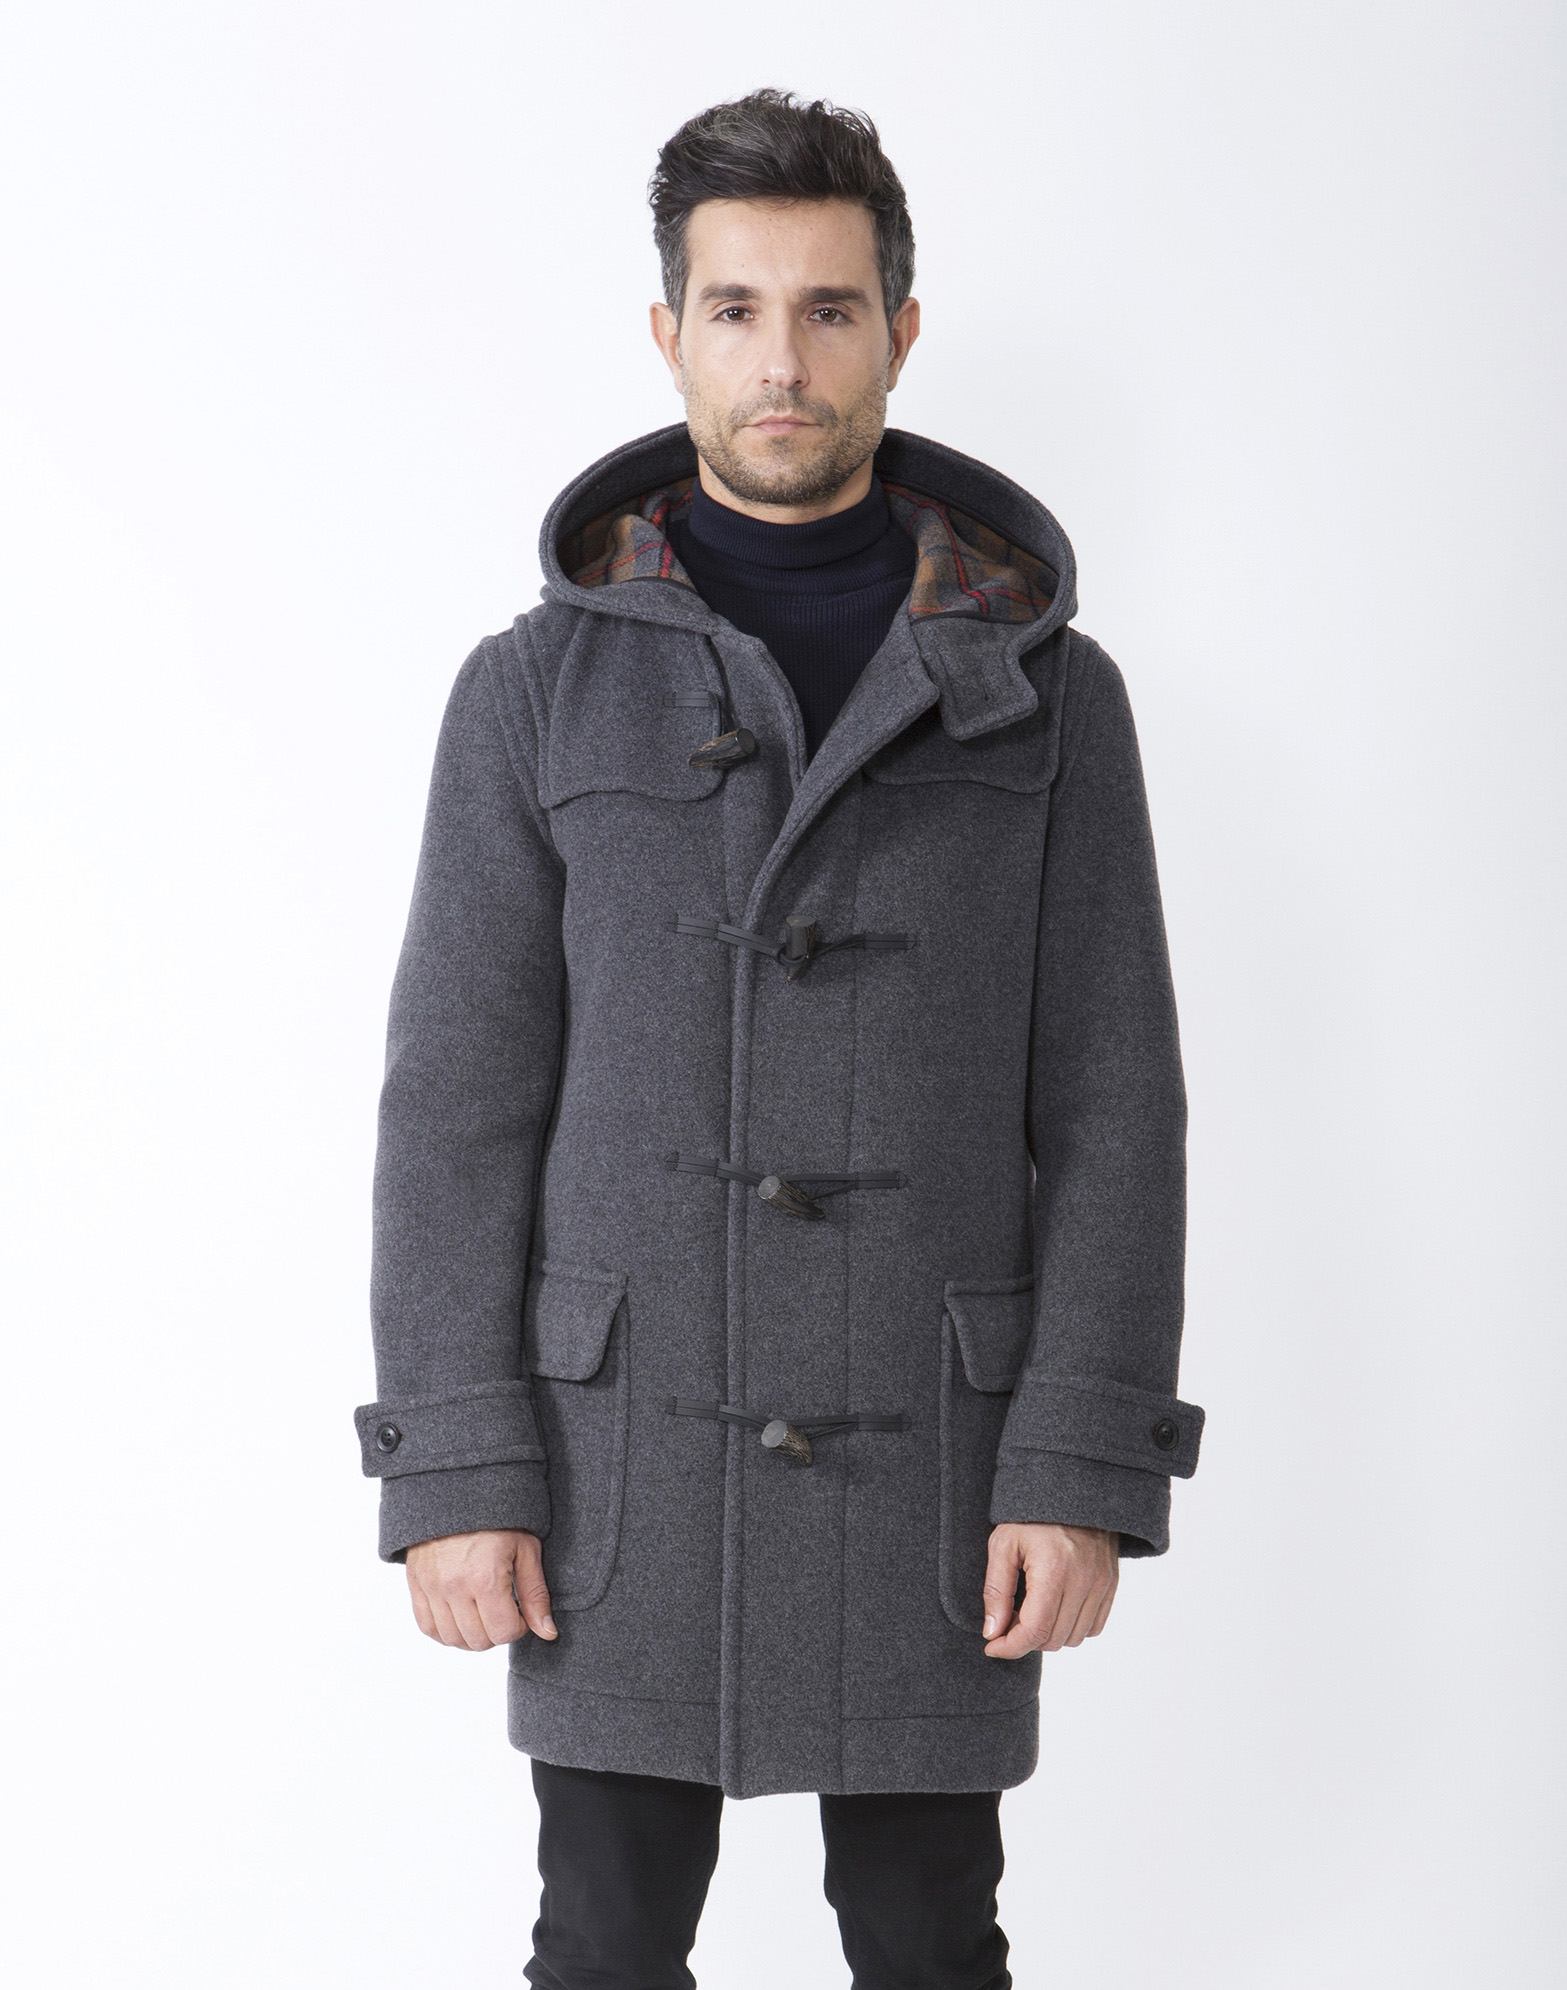 Shop Men's British Duffle & Pea Coats | London Tradition